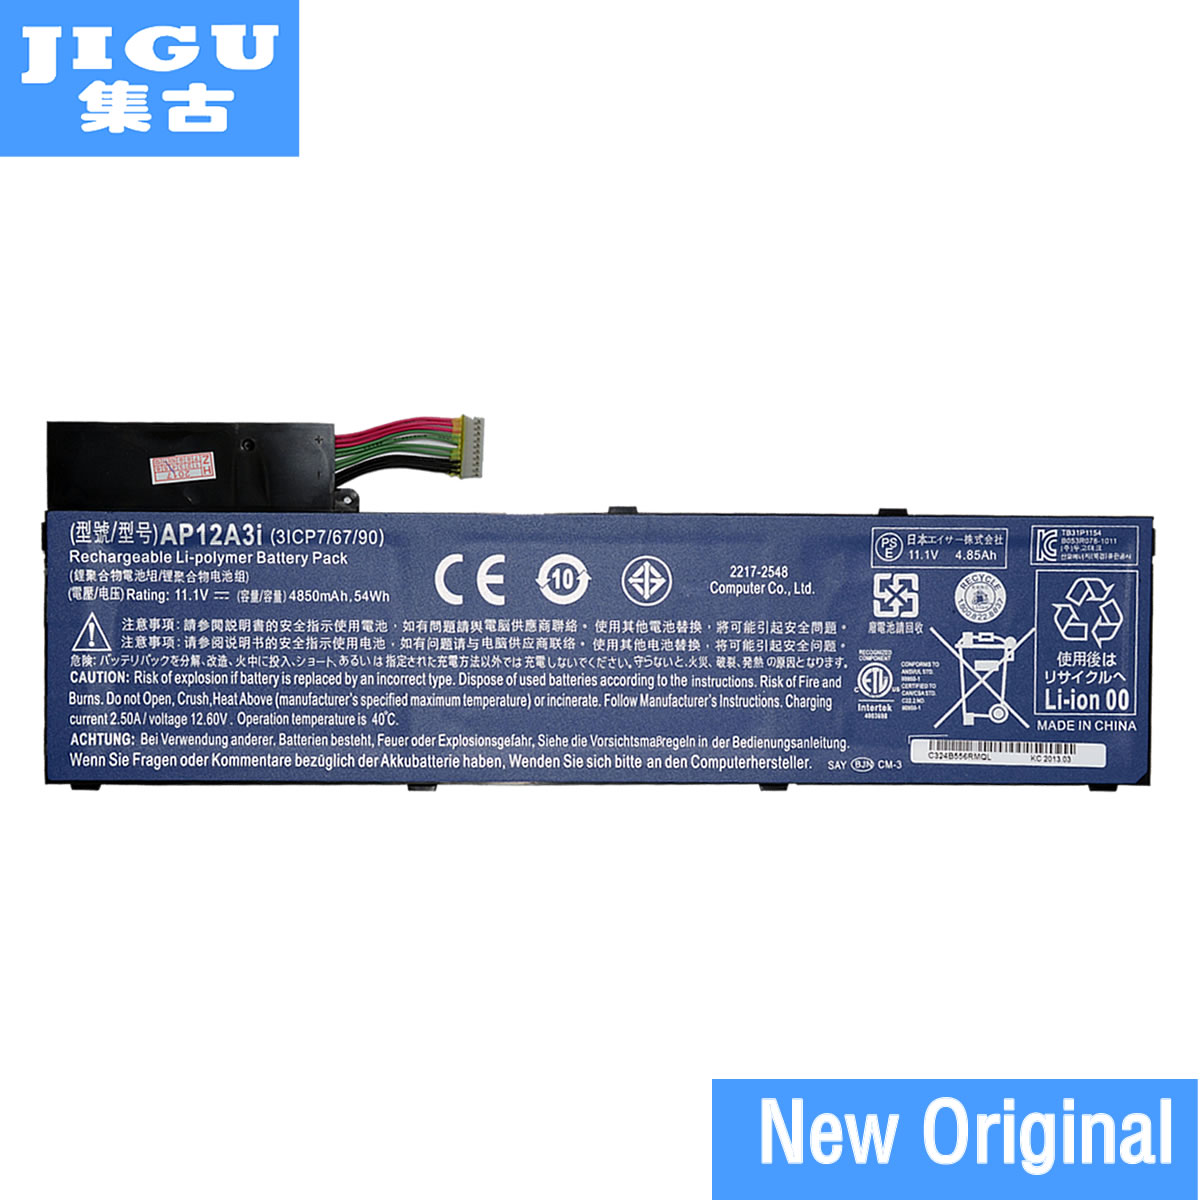 JIGU AP12A3I Original Laptop Battery For ACER Aspire Timeline Ultra M3 M5 M3-581 M5-481 M5-581 AP12A4i M3-581TGJIGU AP12A3I Original Laptop Battery For ACER Aspire Timeline Ultra M3 M5 M3-581 M5-481 M5-581 AP12A4i M3-581TG